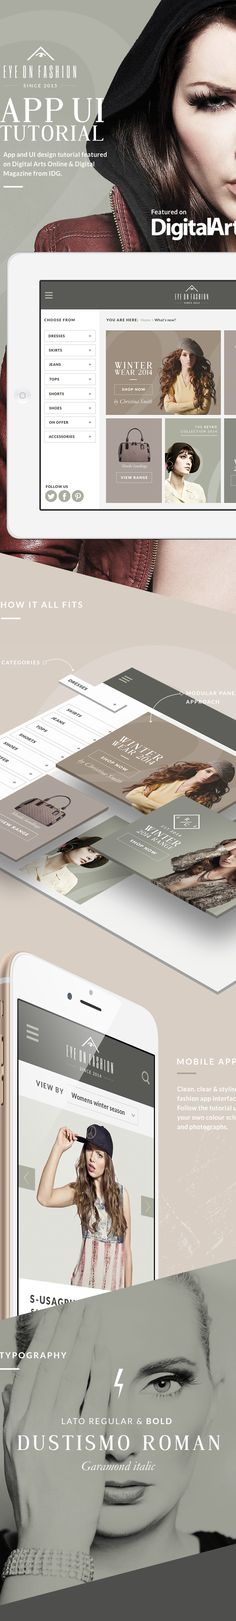 Fashion iPad app UI Tutorial on Digital Arts online on Behance